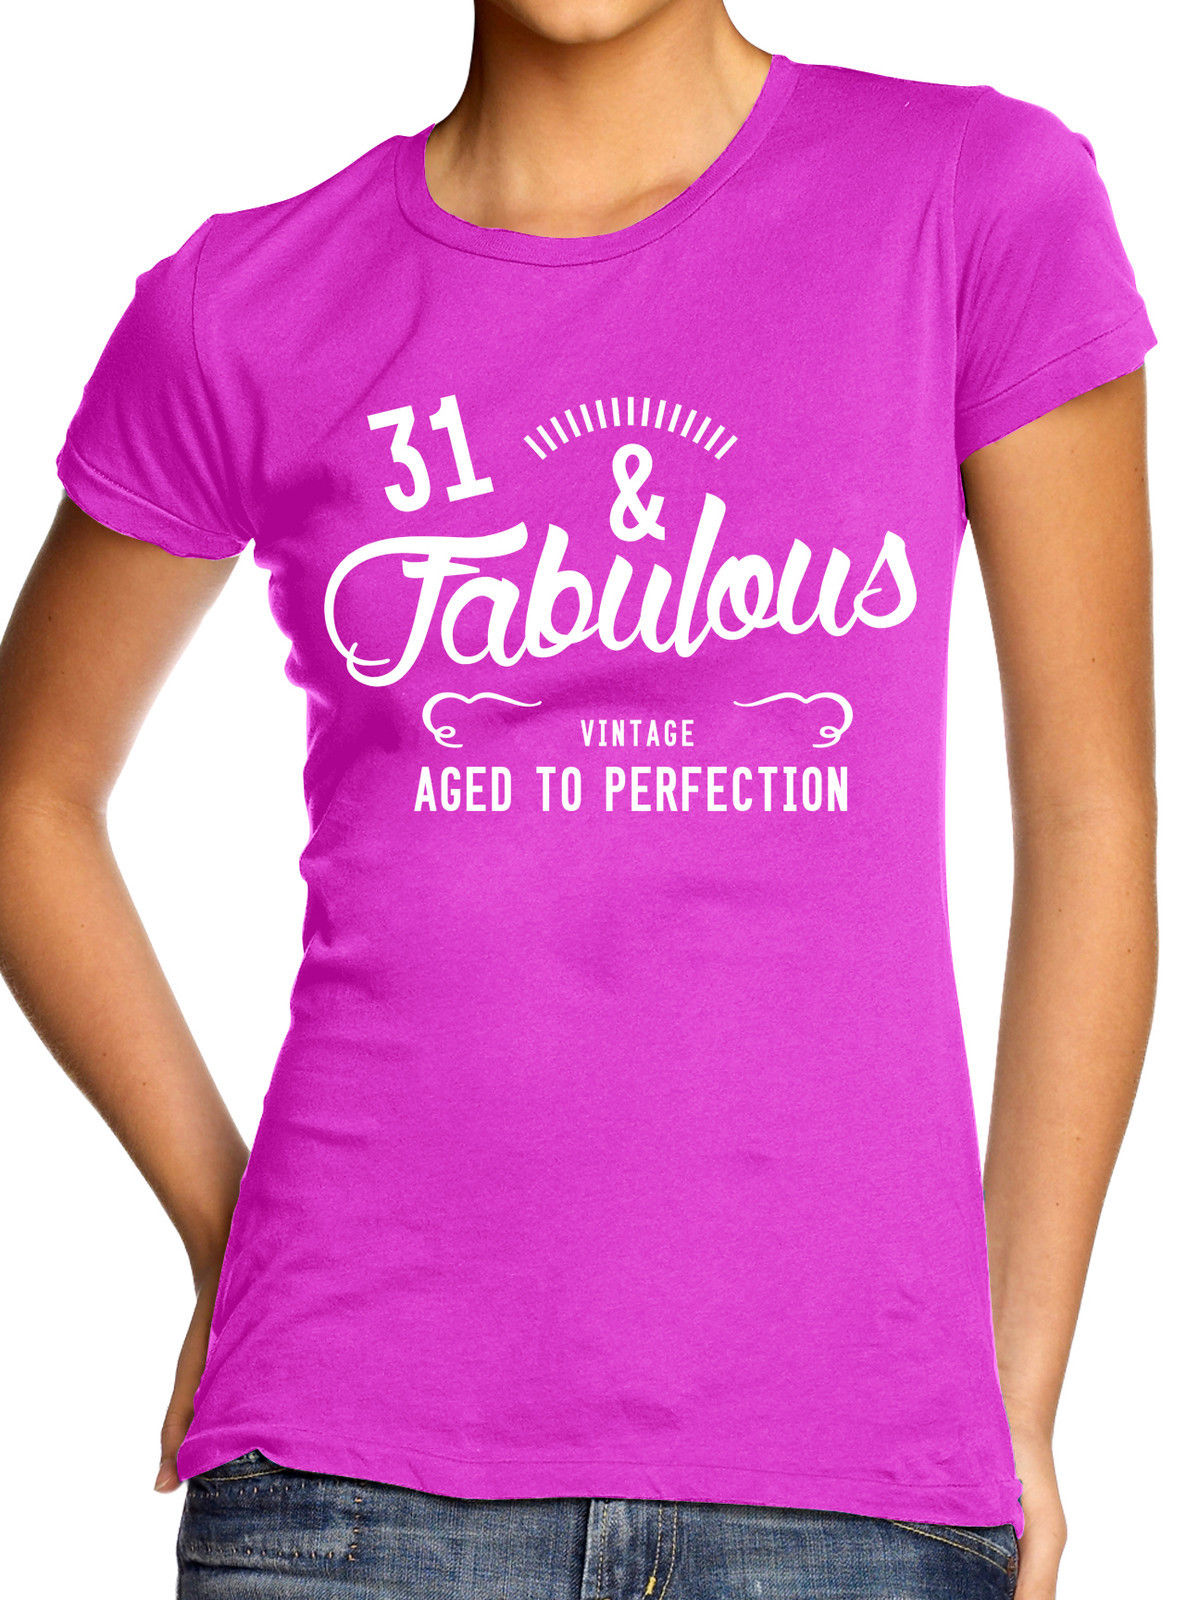 Fabulous And 31 Birthday Gift Present Women Lady Girl For Her Sister Funny Top